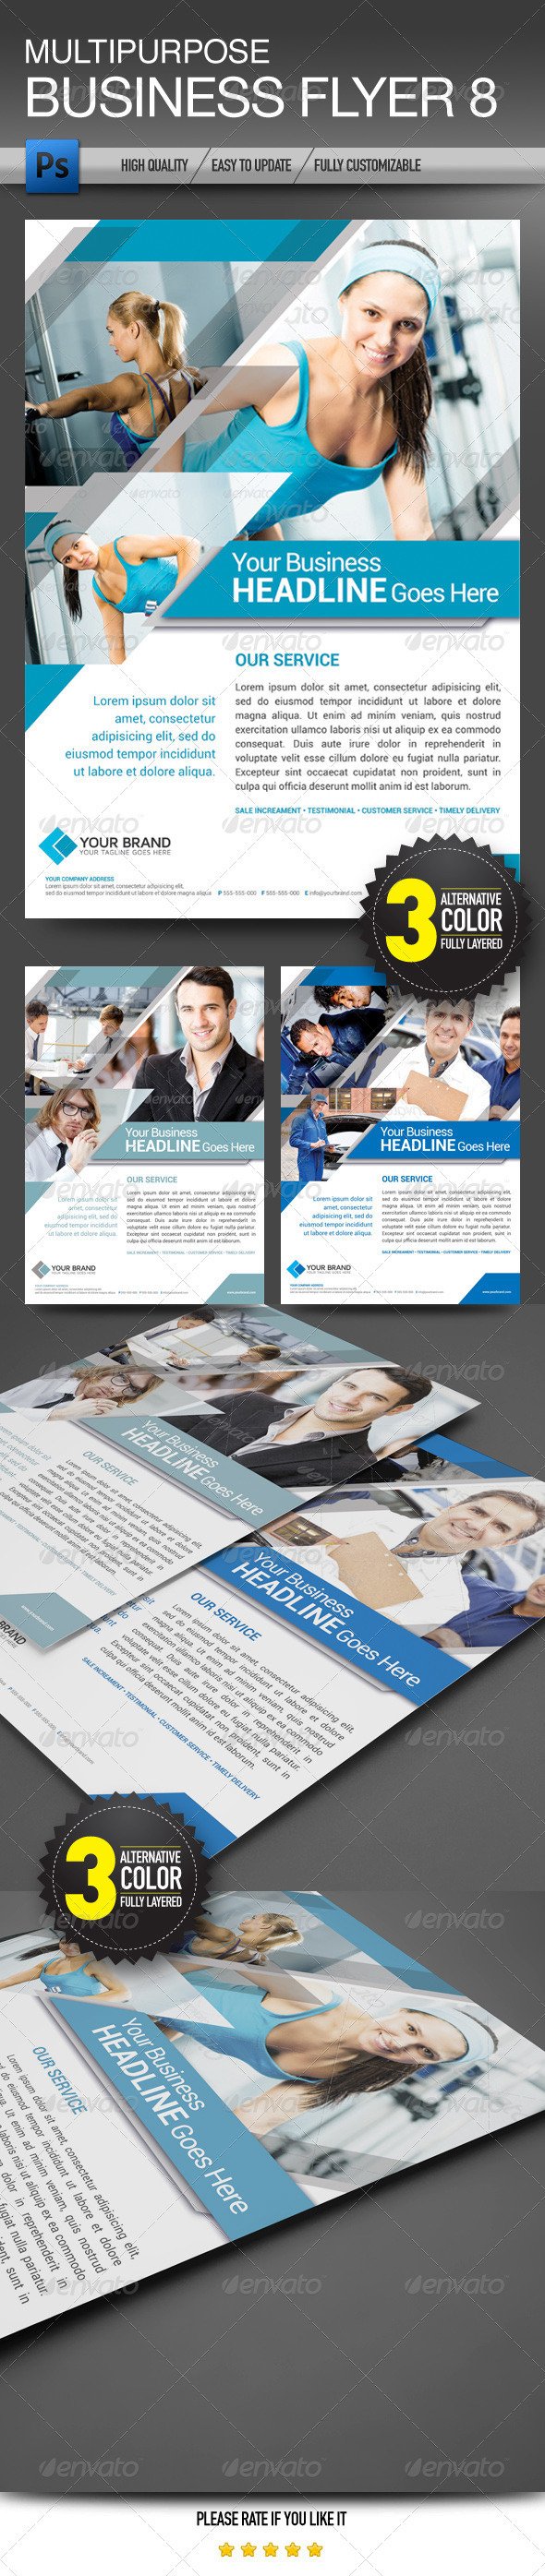 Multipurpose Business Flyer 8